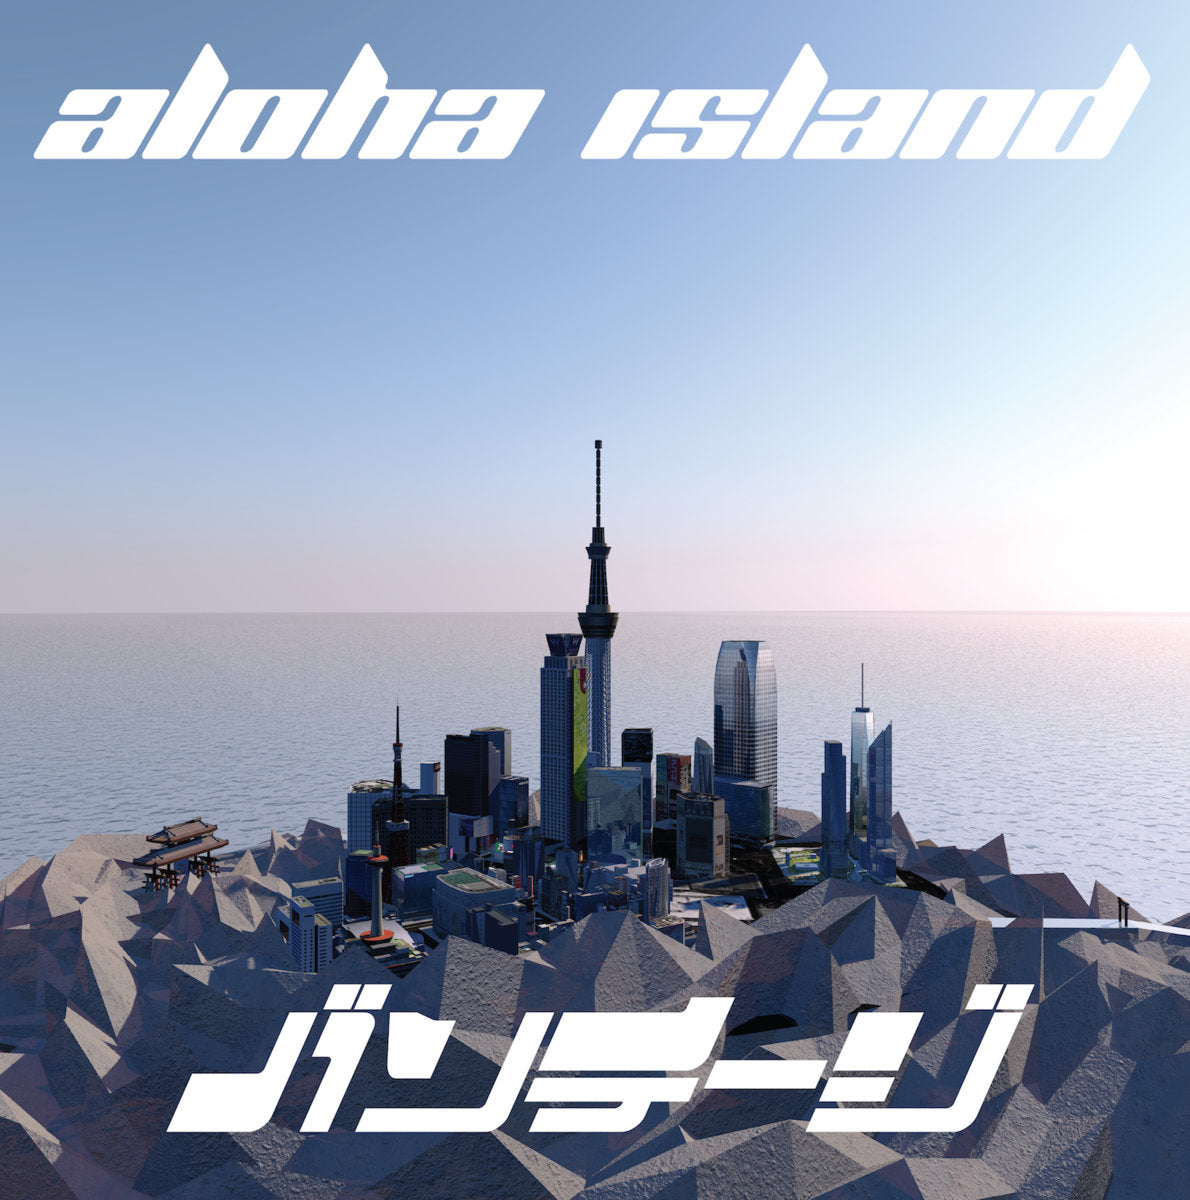 VANTAGE// - Aloha Island album released !